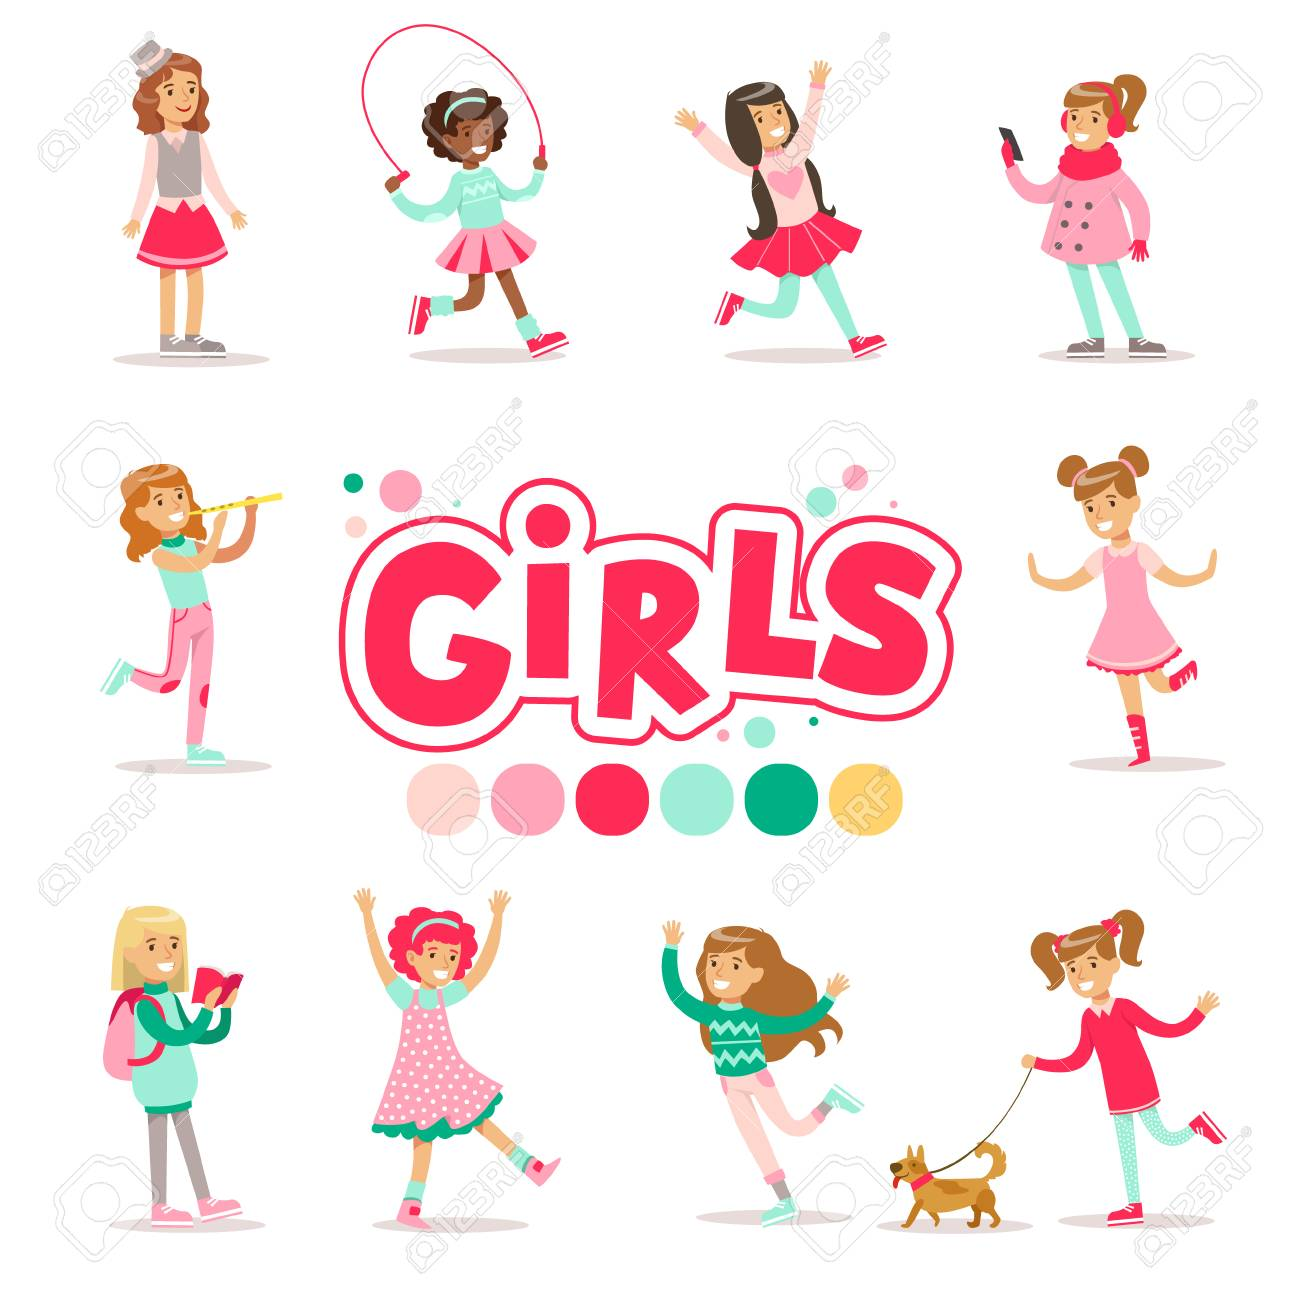 Happy And Their Expected Classic Behavior With Girly Games And Pink Dresses Set Of Traditional Female Kid Role Illustrations. Collection Of Smiling Teenage Girls And Their Interests Vector Flat Illustrations. - 128162333